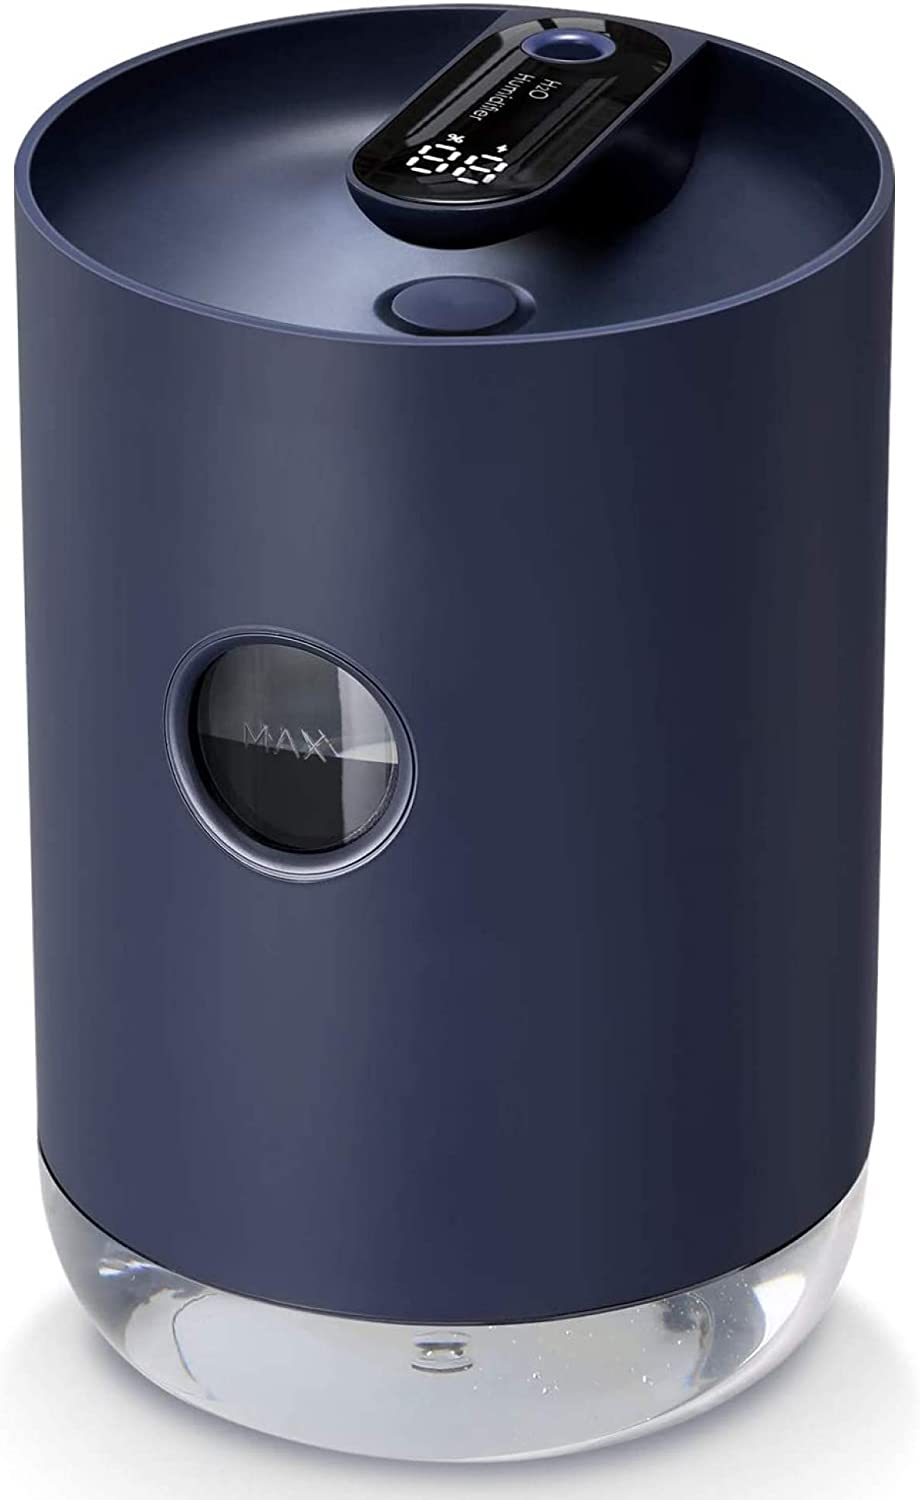 SmartDevil Personal Desk Humidifier, Small Portable Cool Mist Humidifier with Built-in 3000mAh Battery Operated, Night-Light Features, Auto Shut-Off for Office, Bedroom, Home, Navy Blue